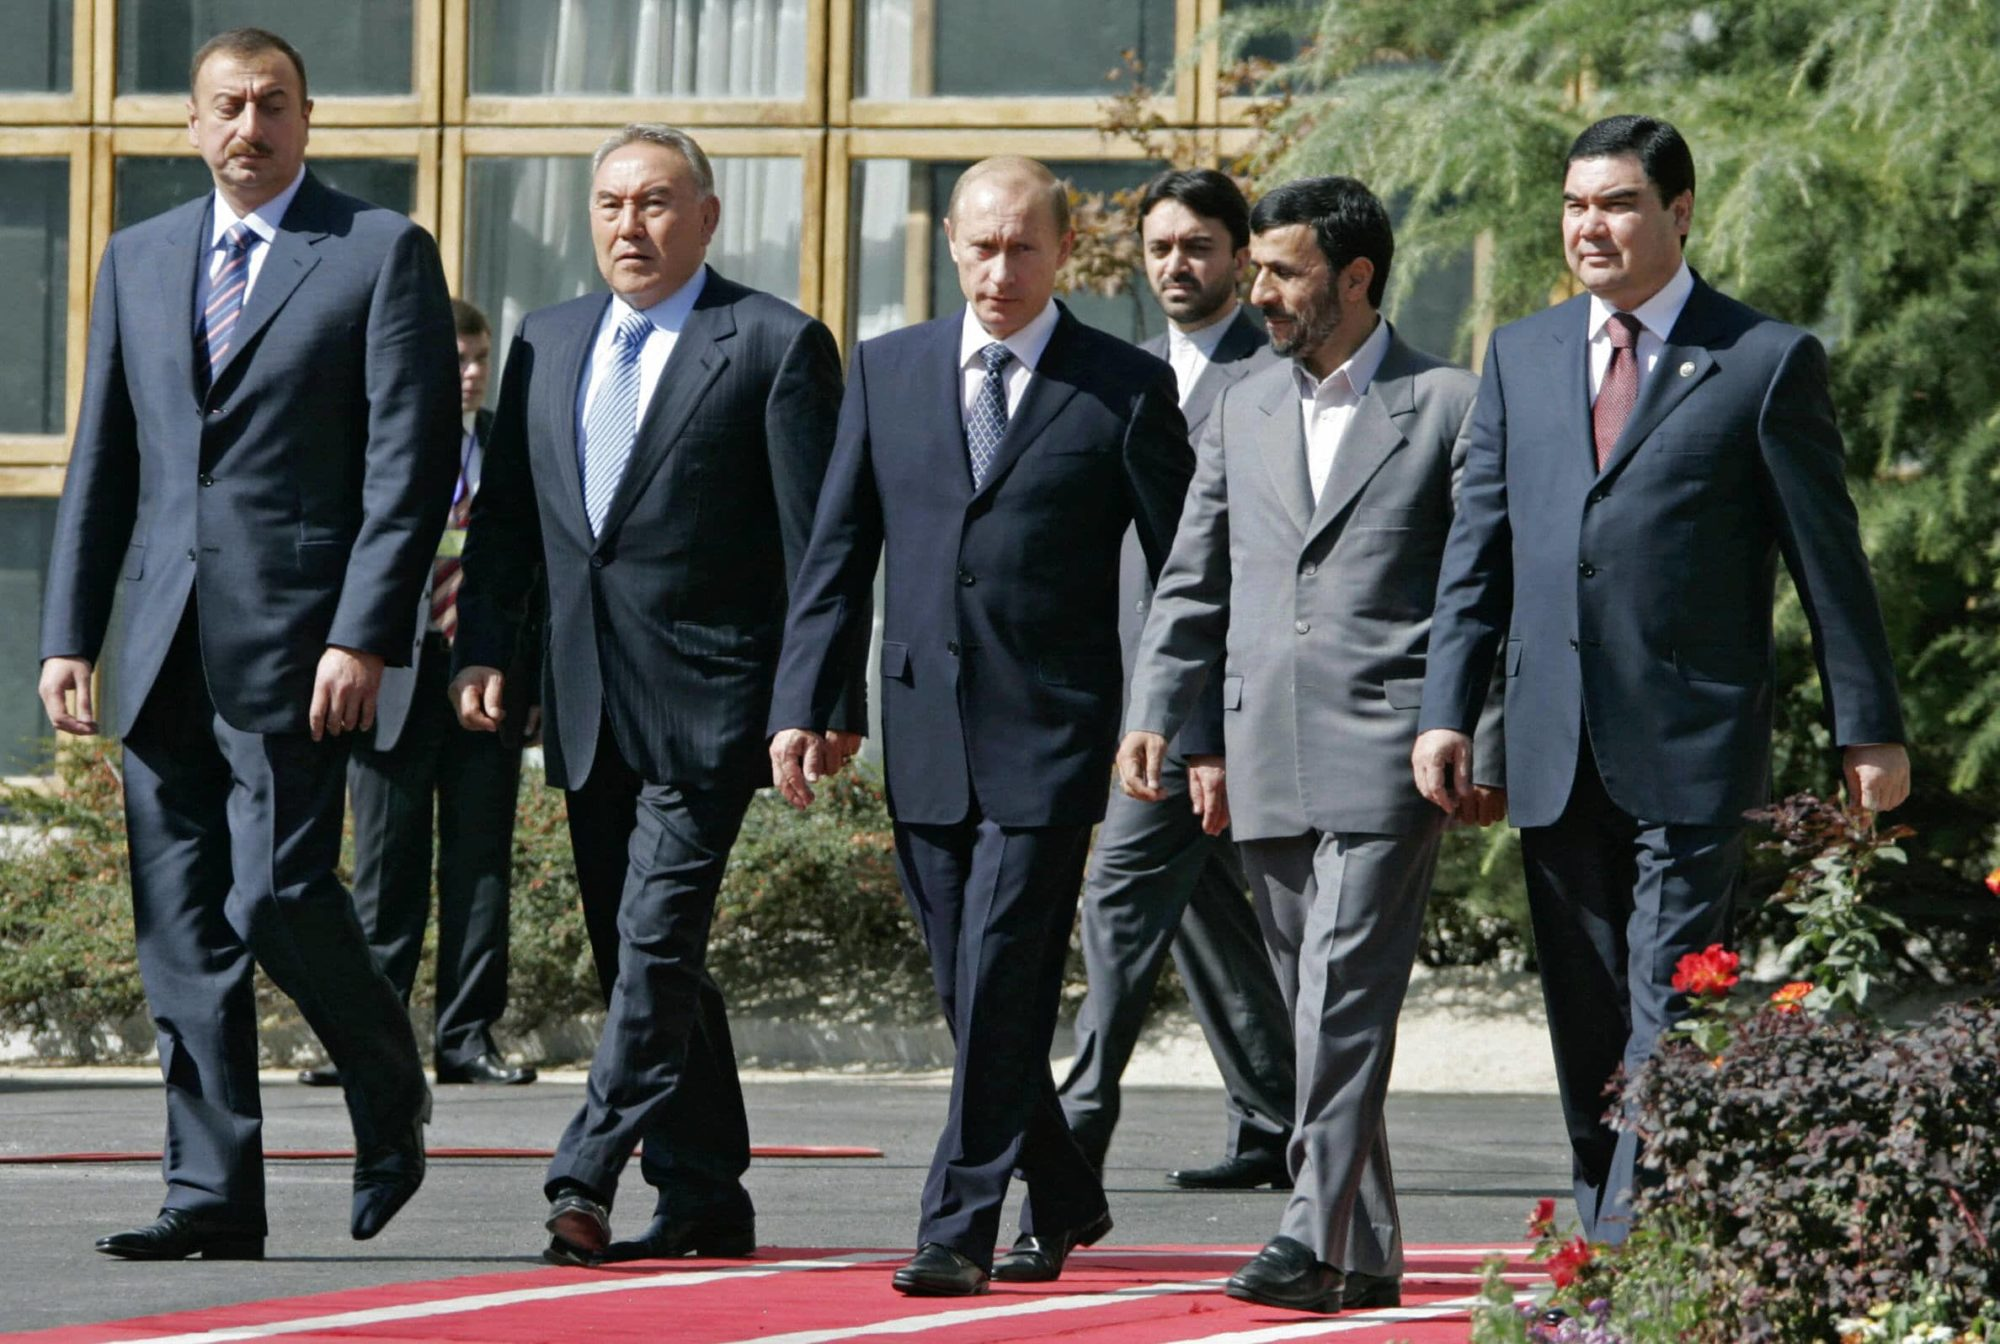 Government officials from various nations walk in a line; corridor.